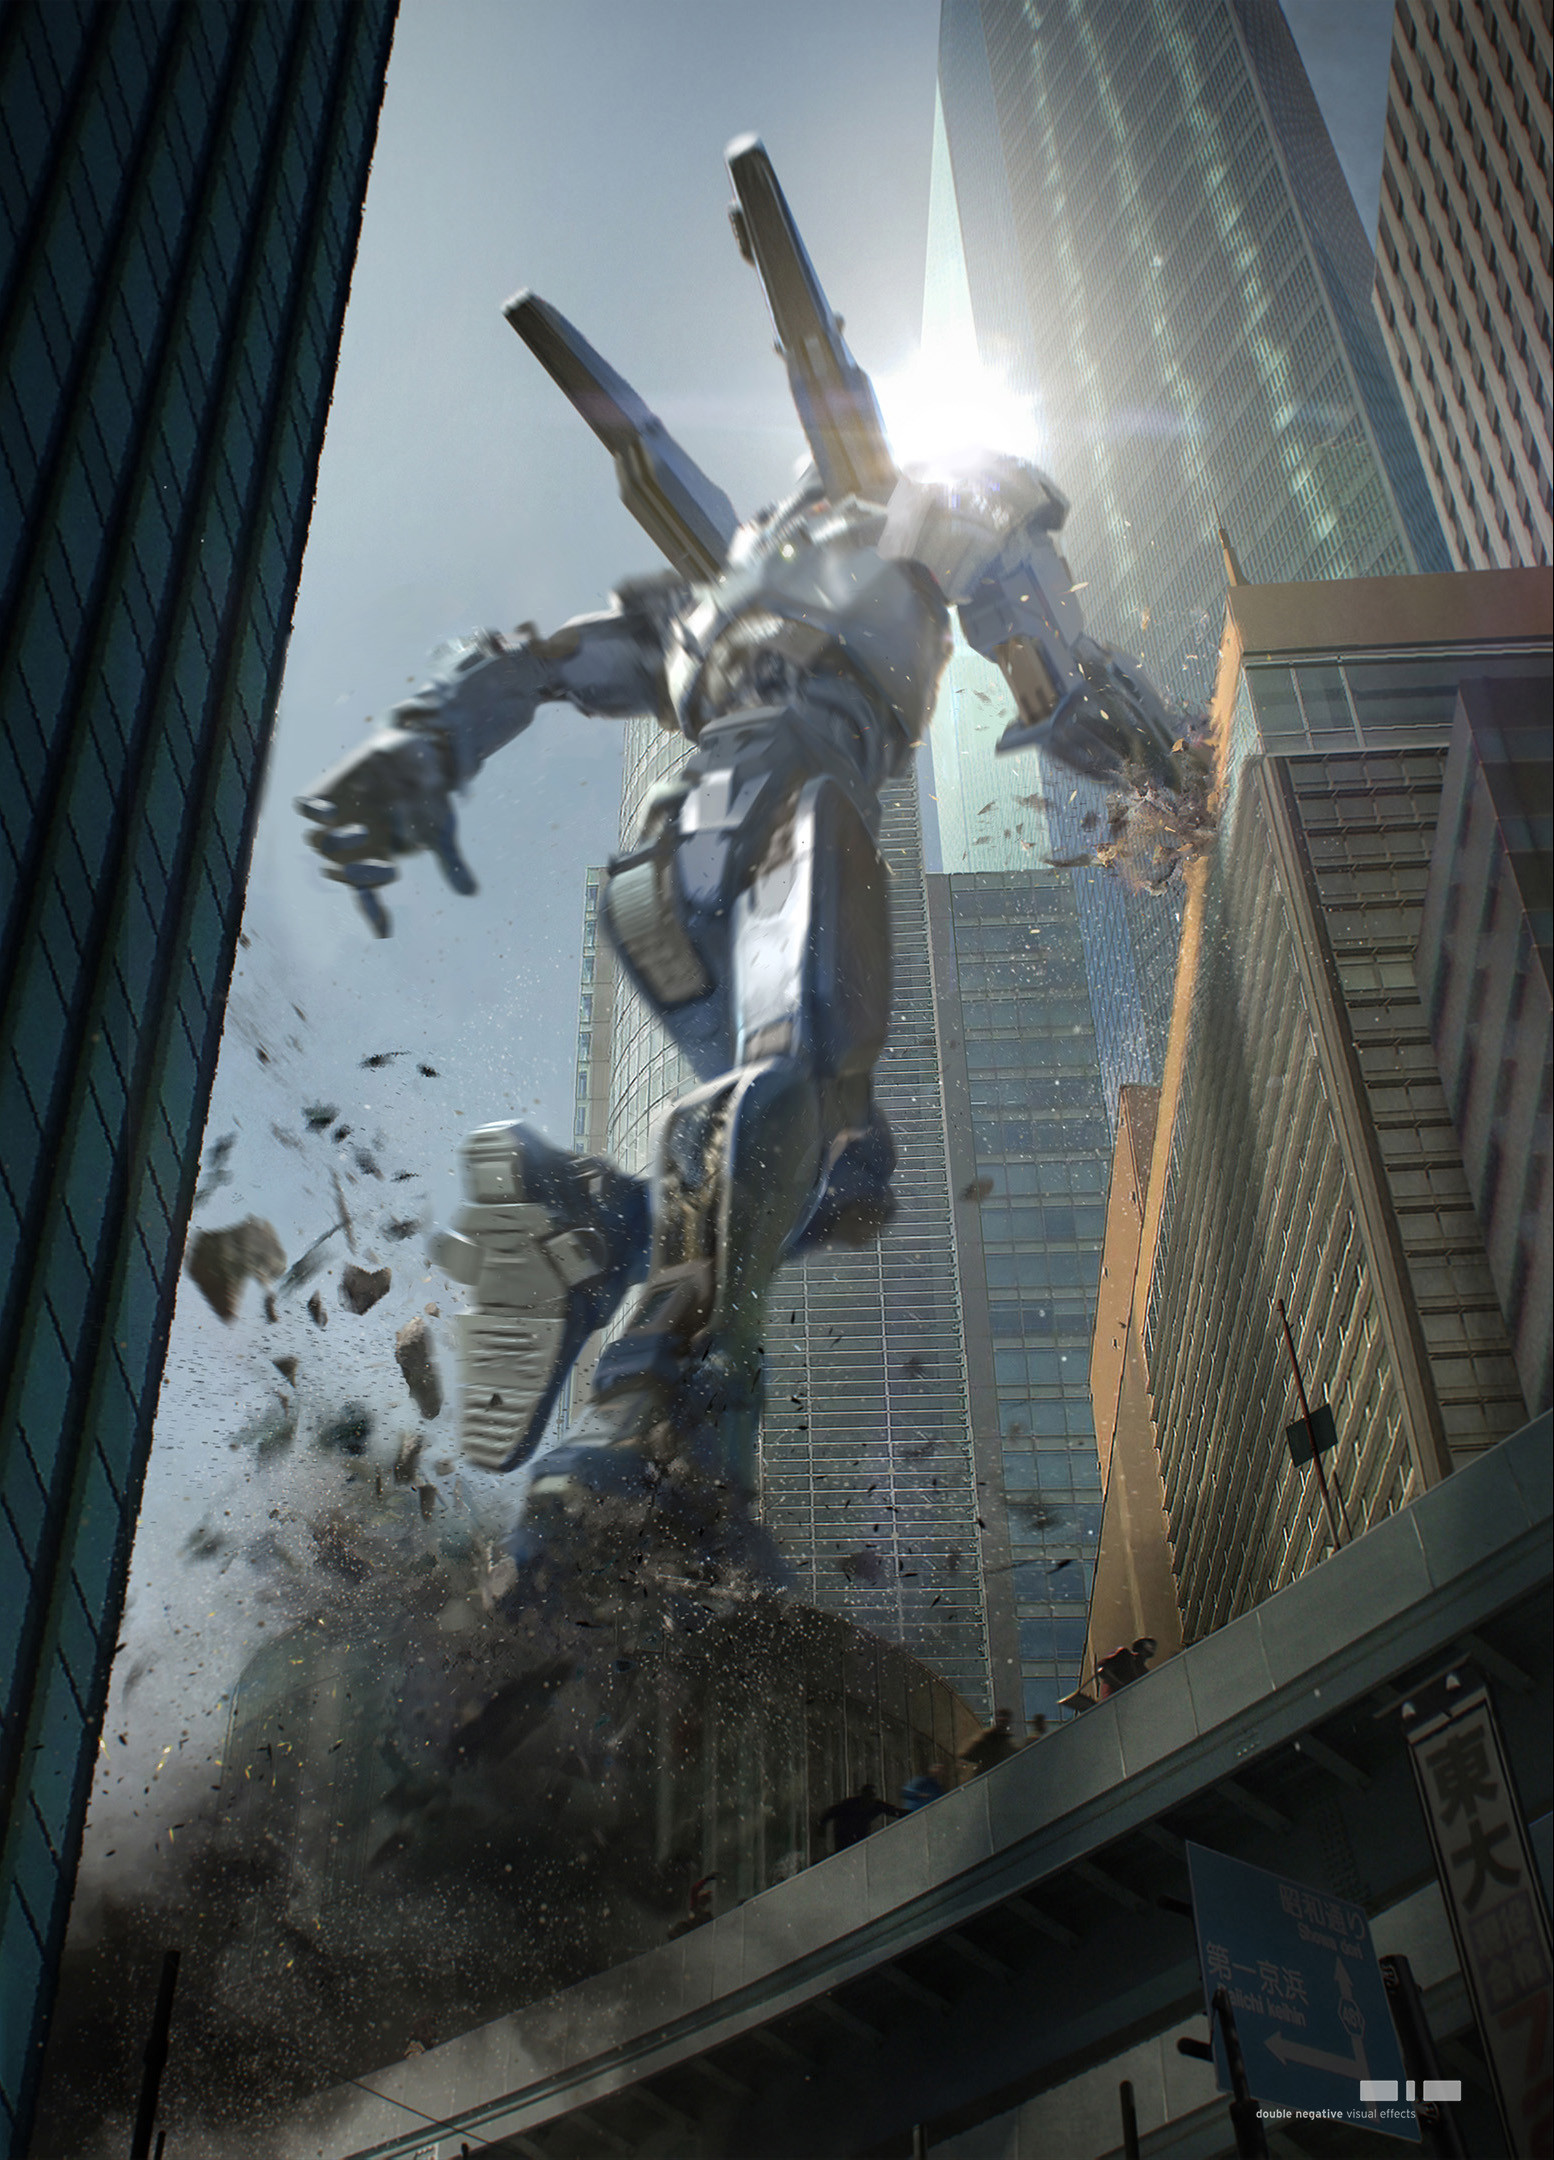 Gipsy Avenger, hopping from building to building in MegaTokyo, during a Kaiju attack.